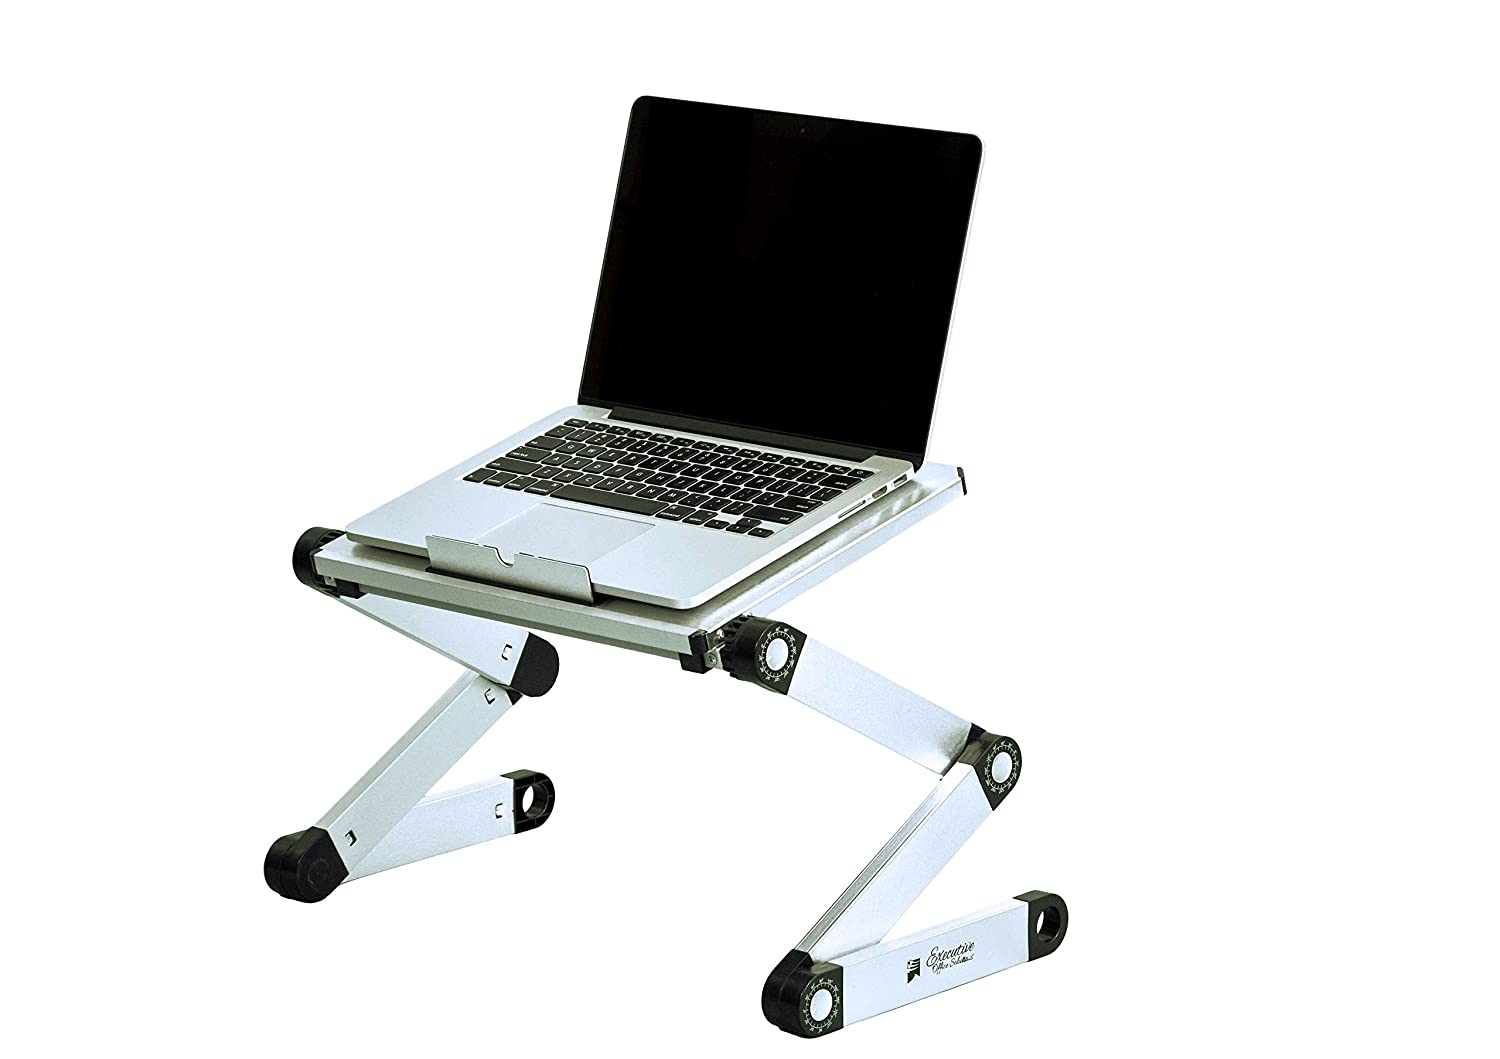 Executive Office Solutions Portable Adjustable Aluminum Laptop Desk/Stand/Table Vented Notebook-Macbook-Ultra Light Weight Ergonomic TV Bed Lap Tray Stand Up/Sitting-Silver